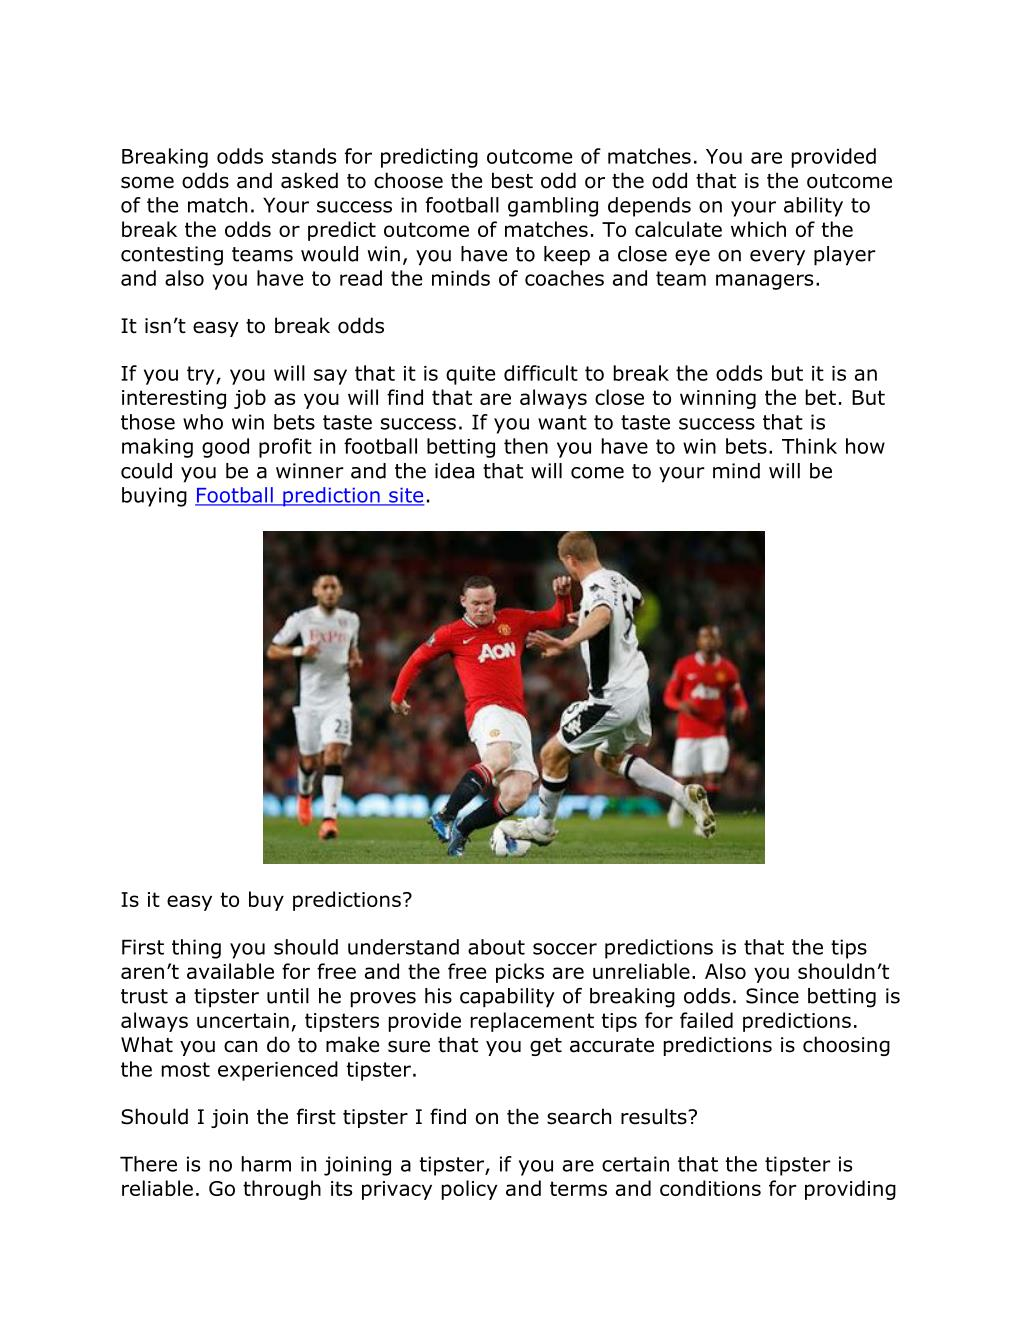 PPT - Tips for buying correct football betting tips PowerPoint